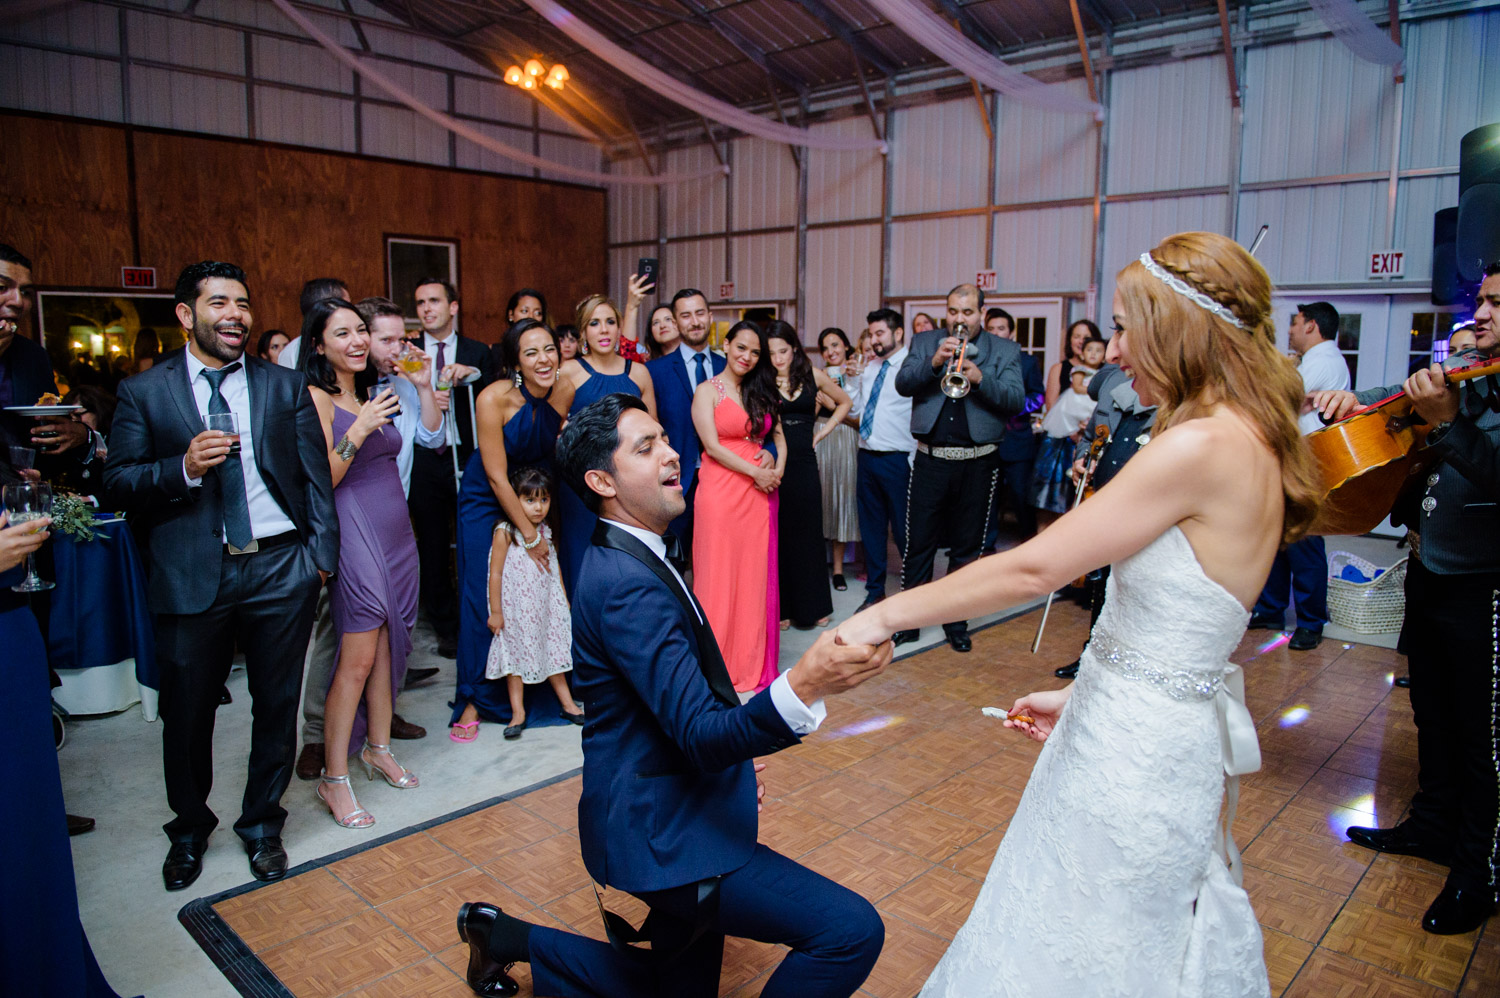 161001-Melina-&-Jose-Wedding-1118-blog.jpg